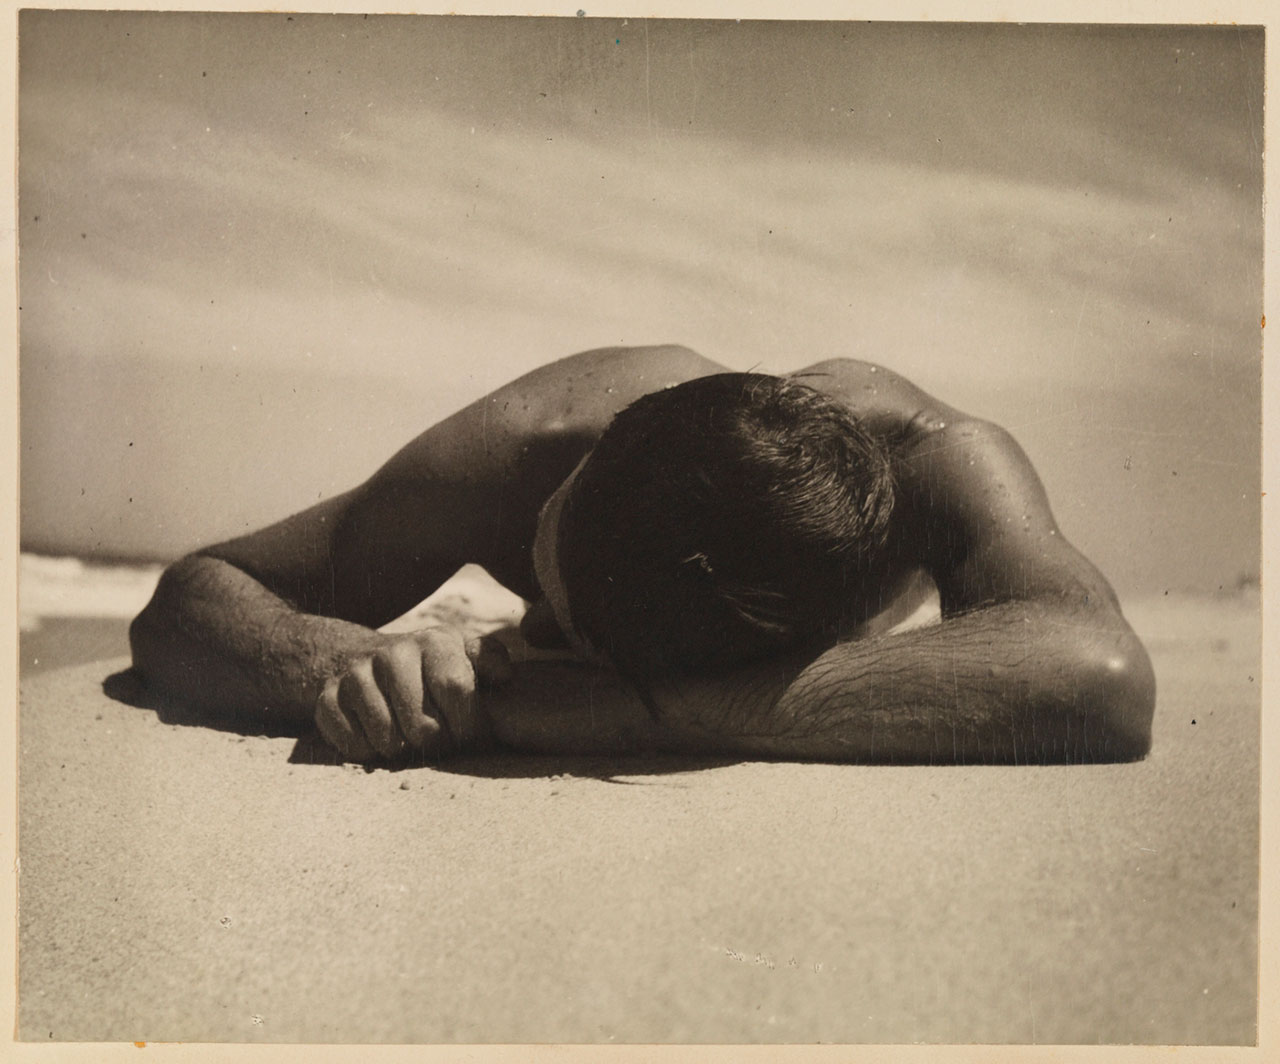 """Camping trips on Culburra Beach, N.S.W., 1937 / Max Dupain and Olive Cotton. 19. Harold Salvage sunbaking, """"The Sunbather"""". SAFE/PXA 1951. (Digital ID: a9668019)"""